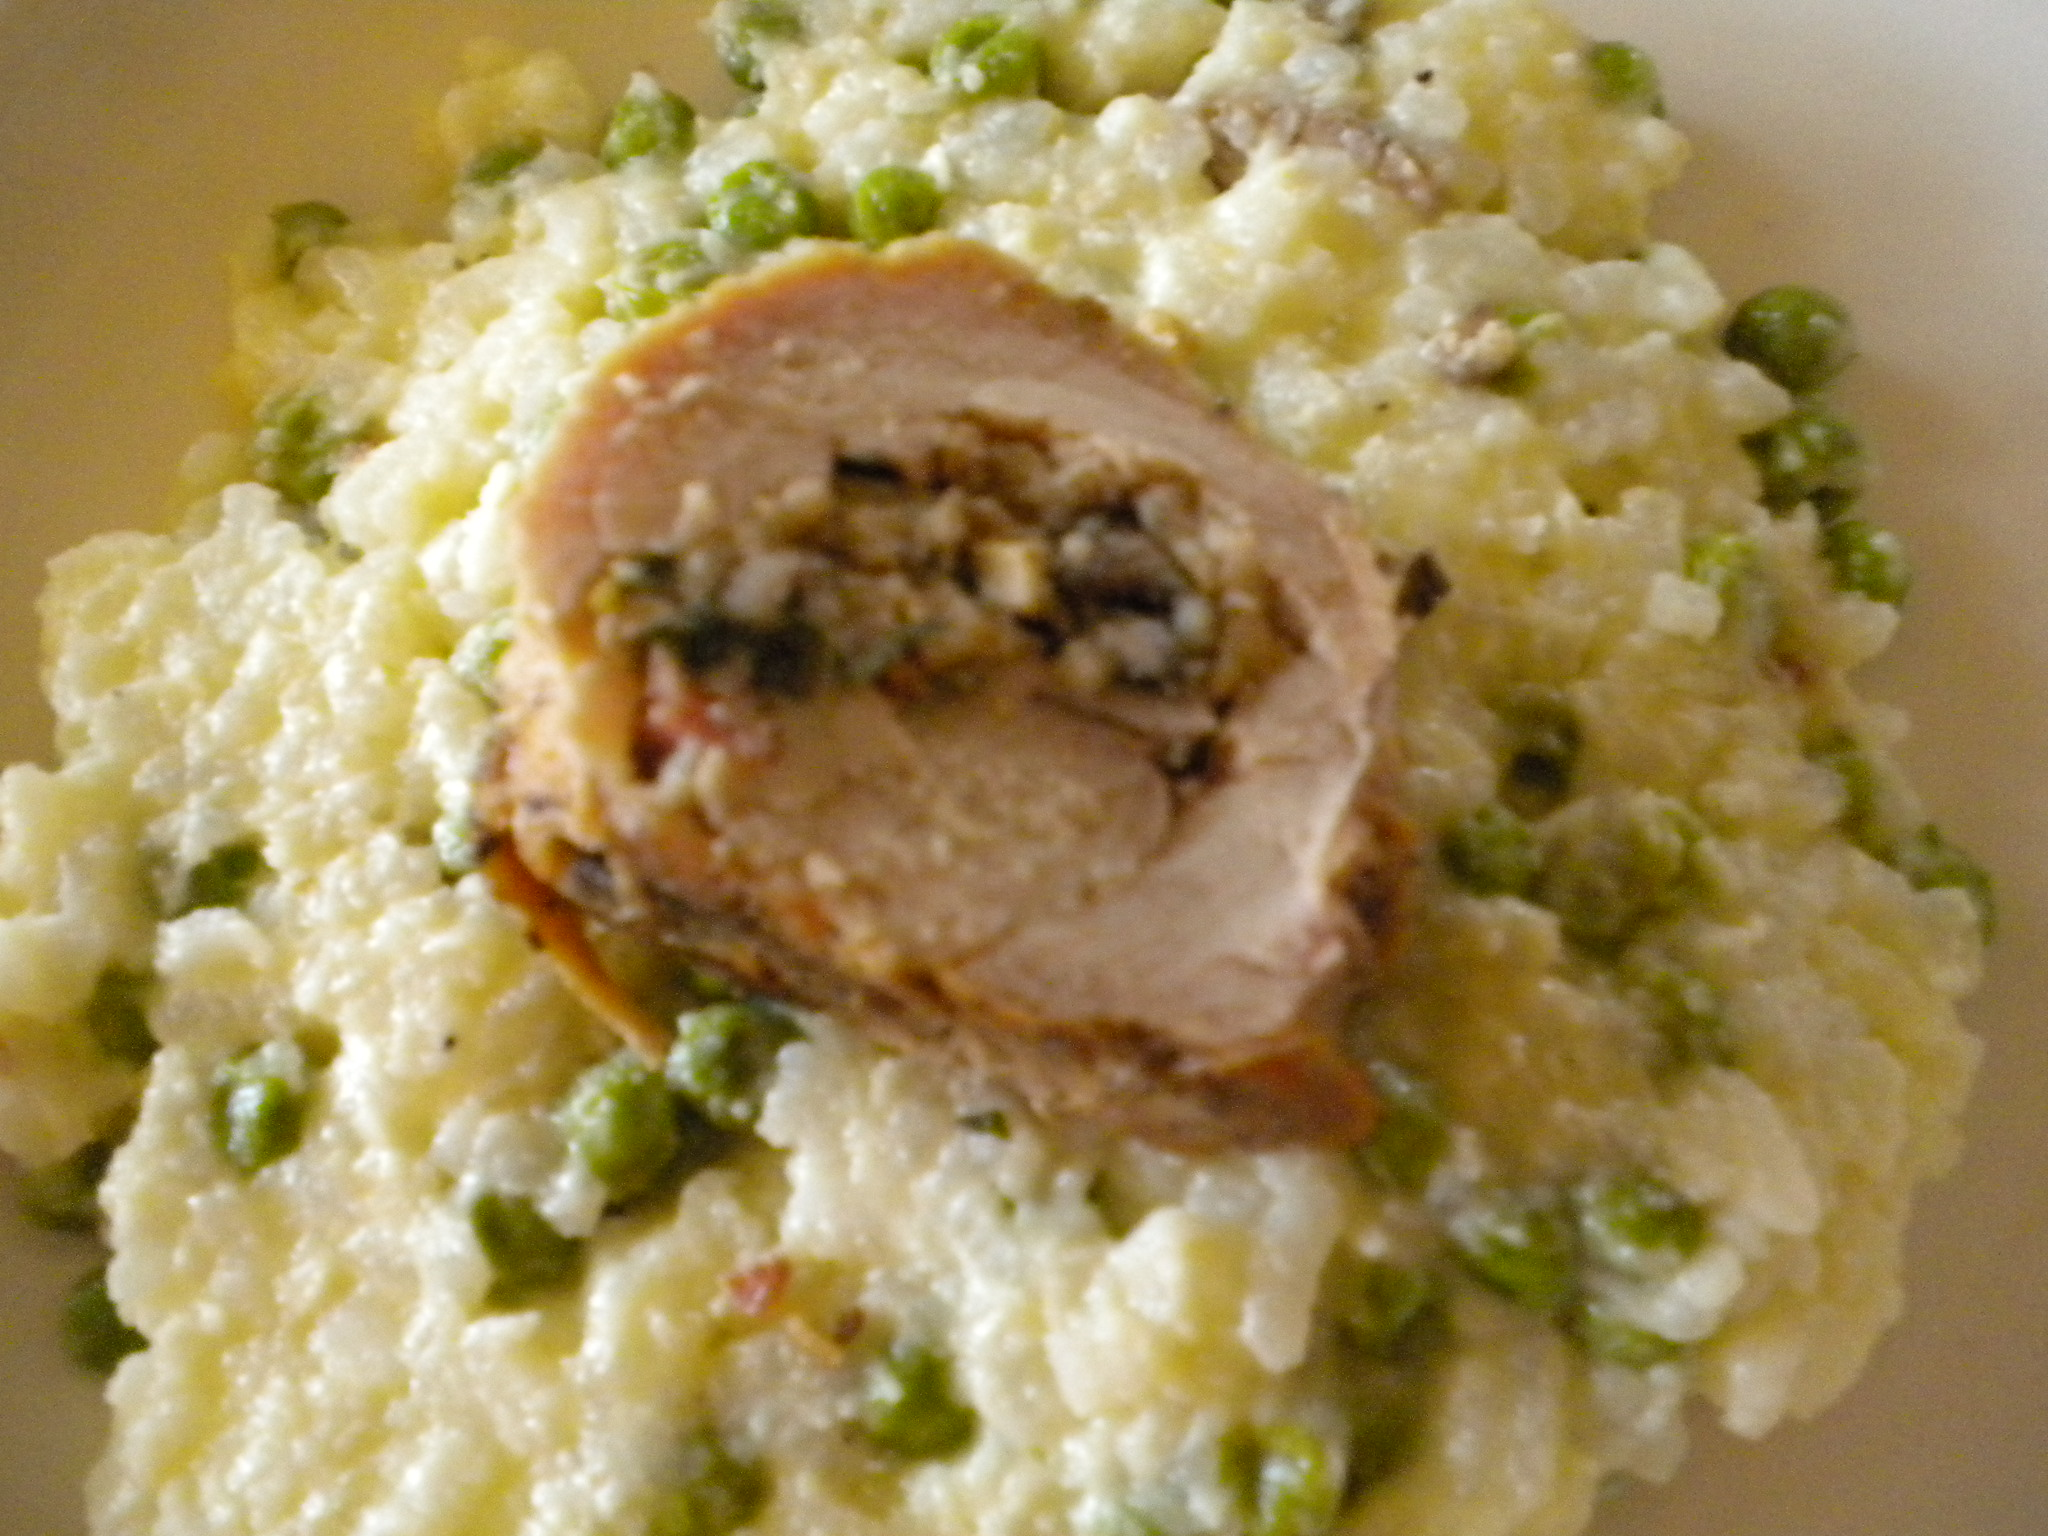 Pancetta and Mushroom Stuffed Pork Tenderloin